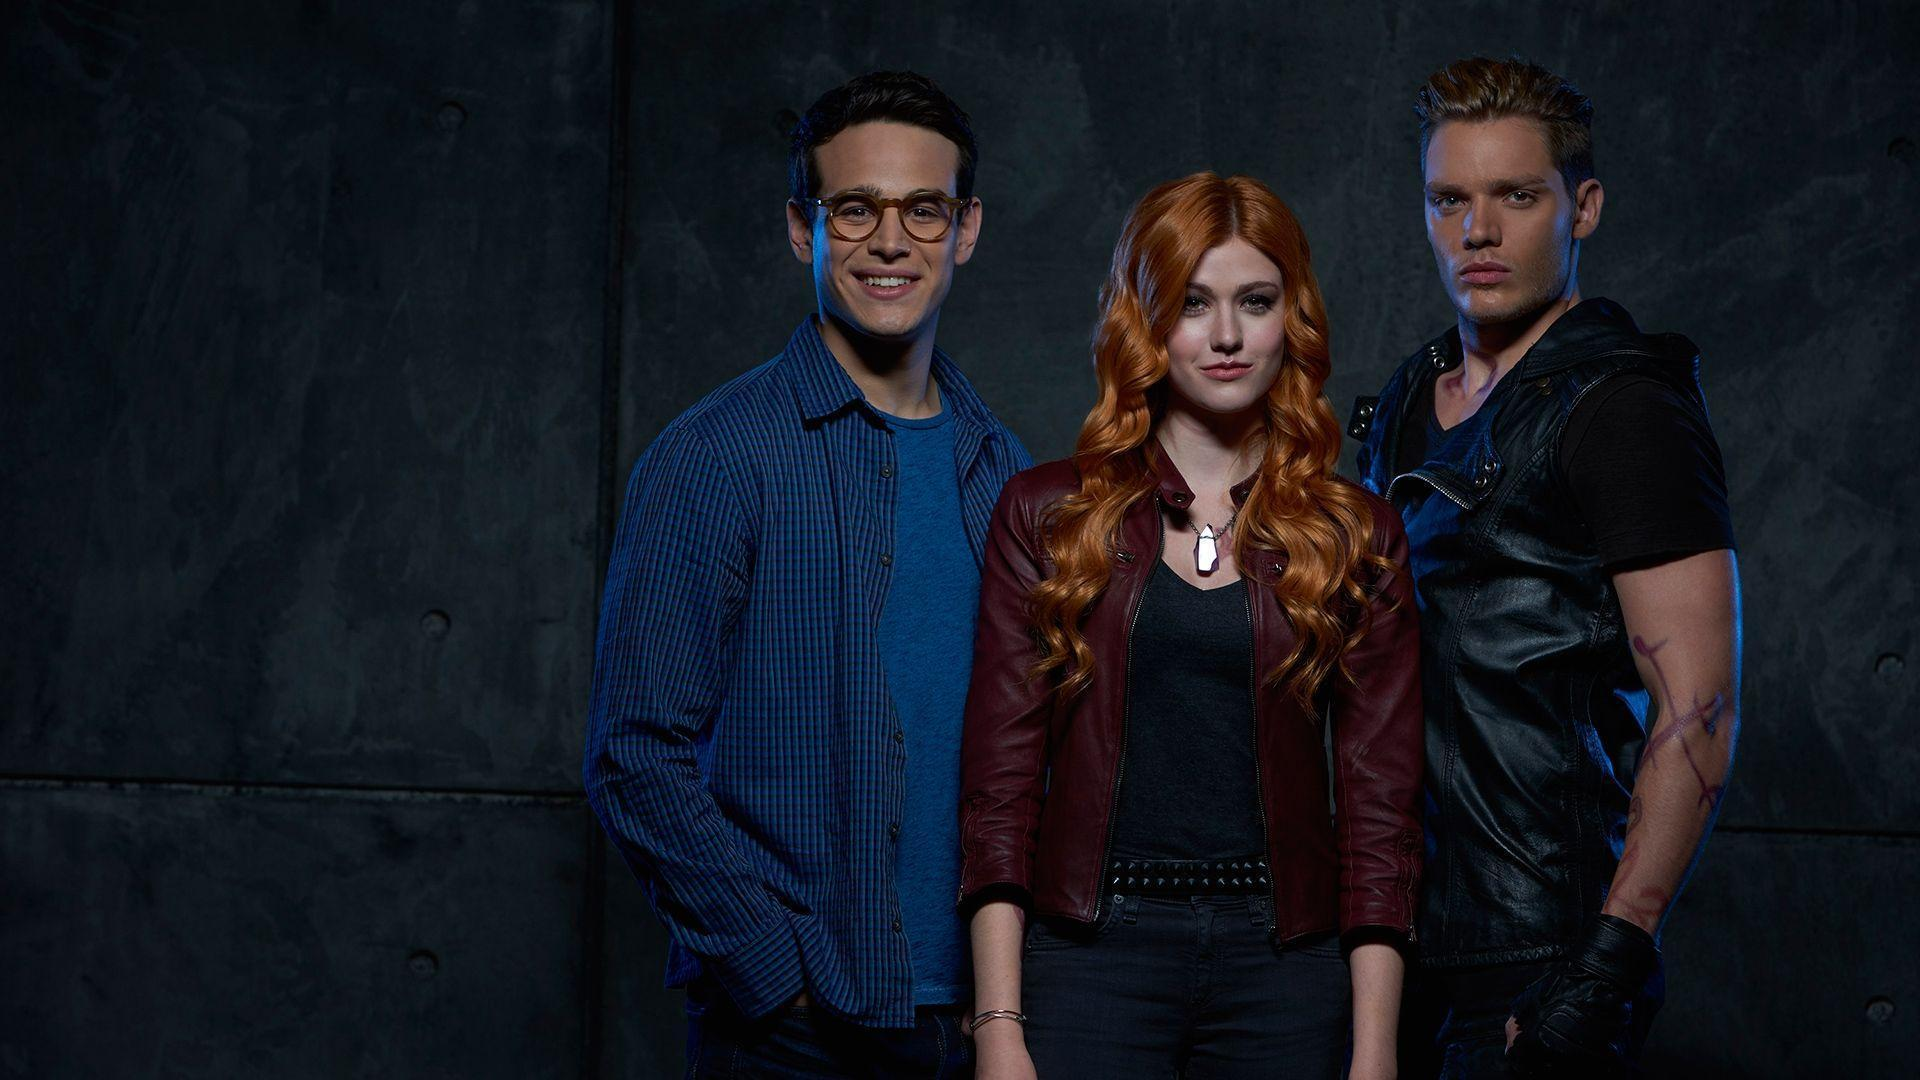 Shadowhunters - Shadowhunters Wallpaper (1920x1080) (252324)